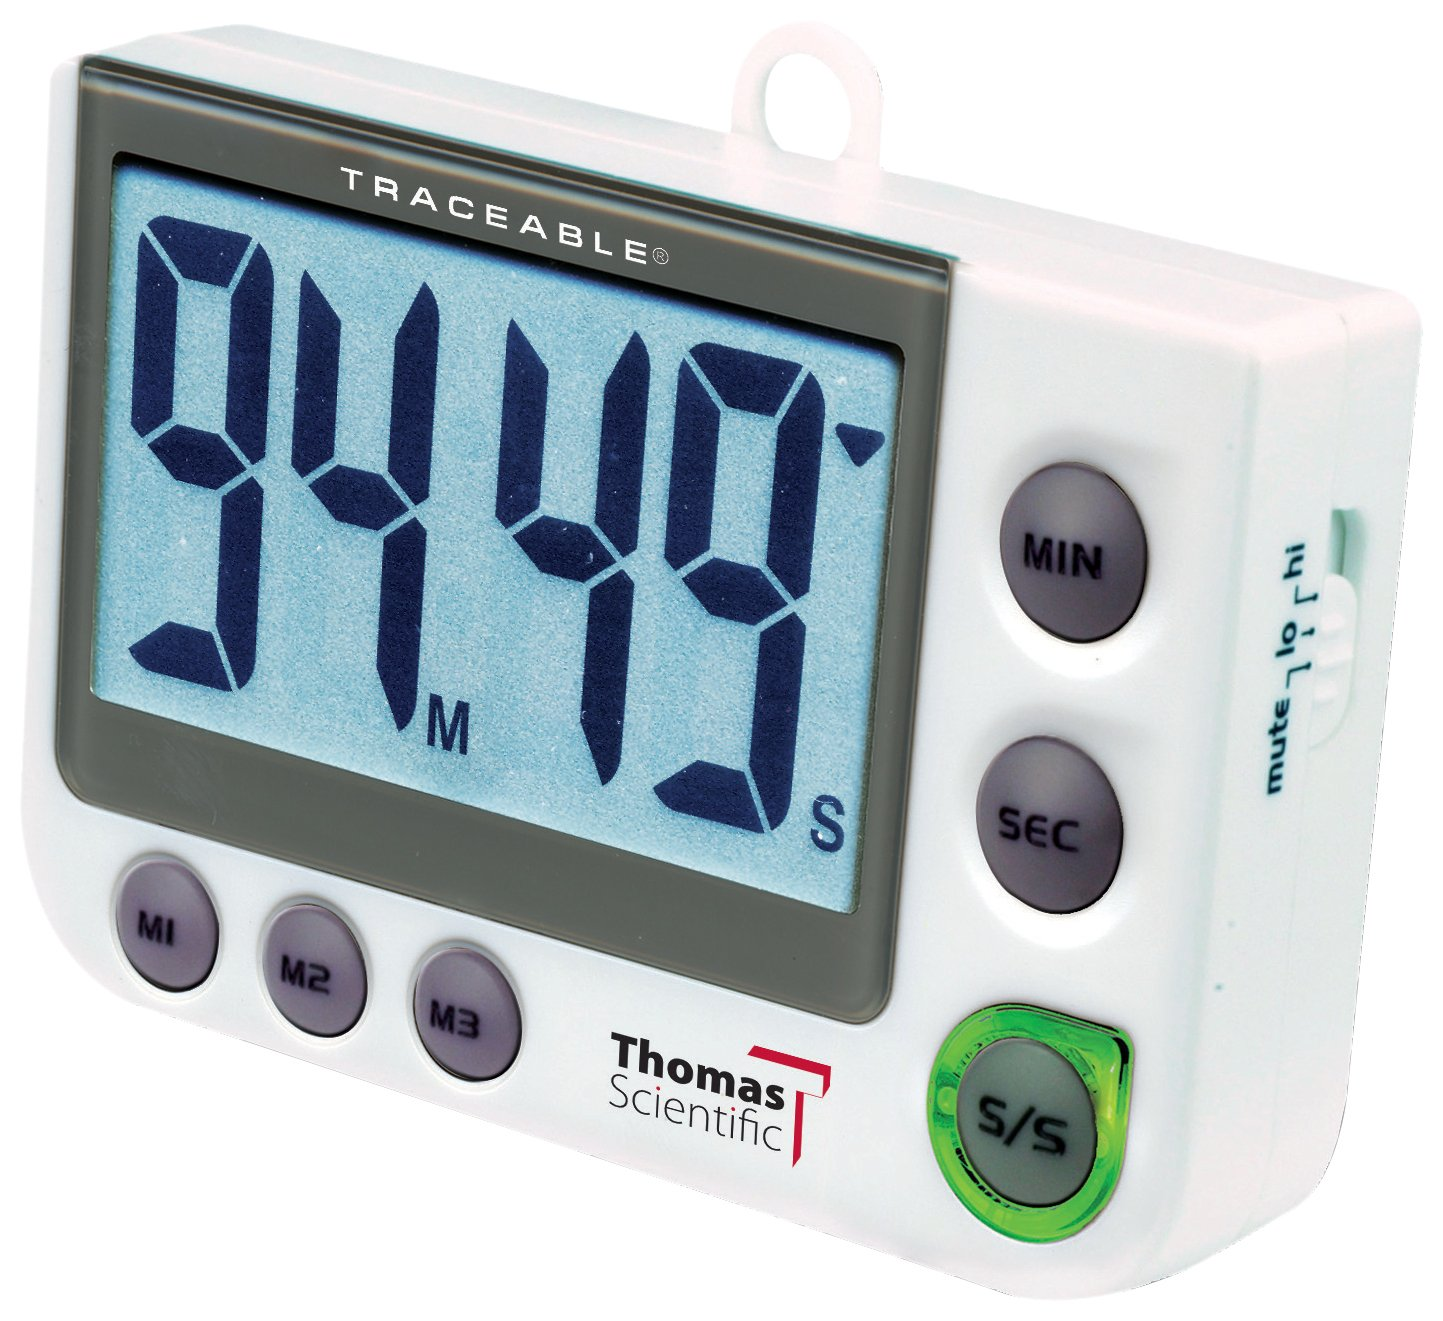 Thomas 5013 Traceable Flash LED Alert Big-Digit Alarm Timer, 0.01 Percent Accuracy, 2-1/4 Width x 3-1/2 Height x 5/8 Depth Thomas Scientific